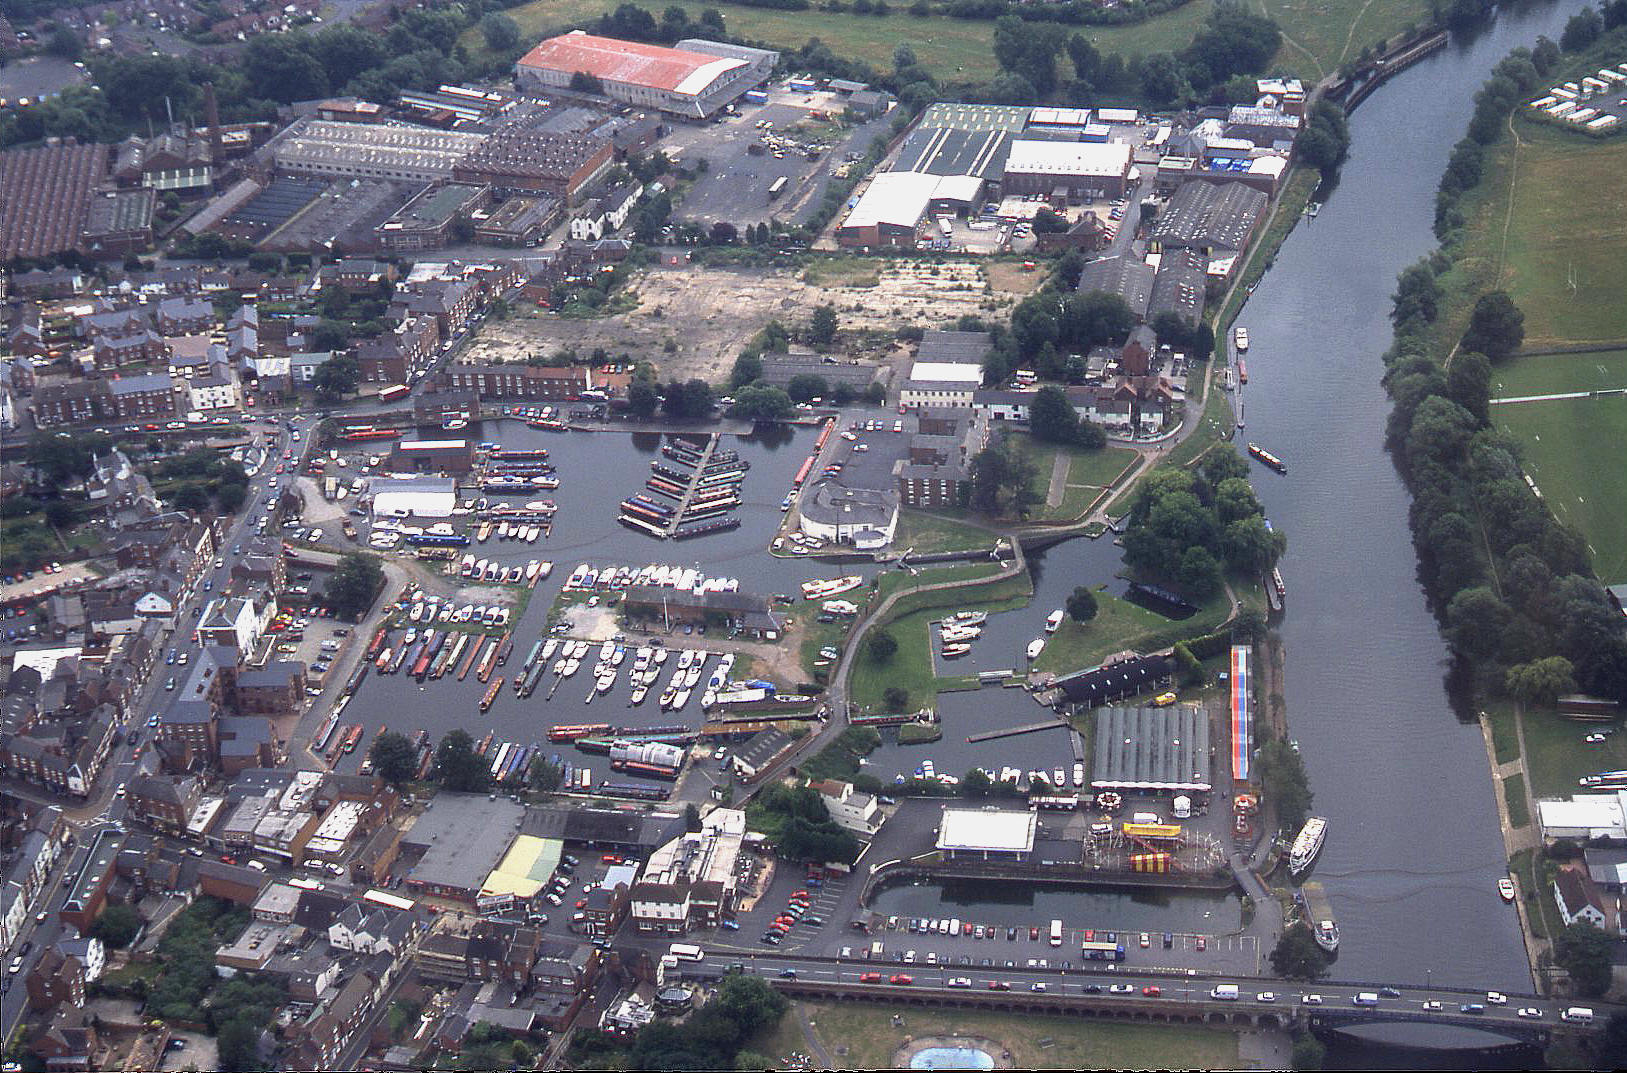 Stourport-on-Severn, Worcestershire. Circa 2003